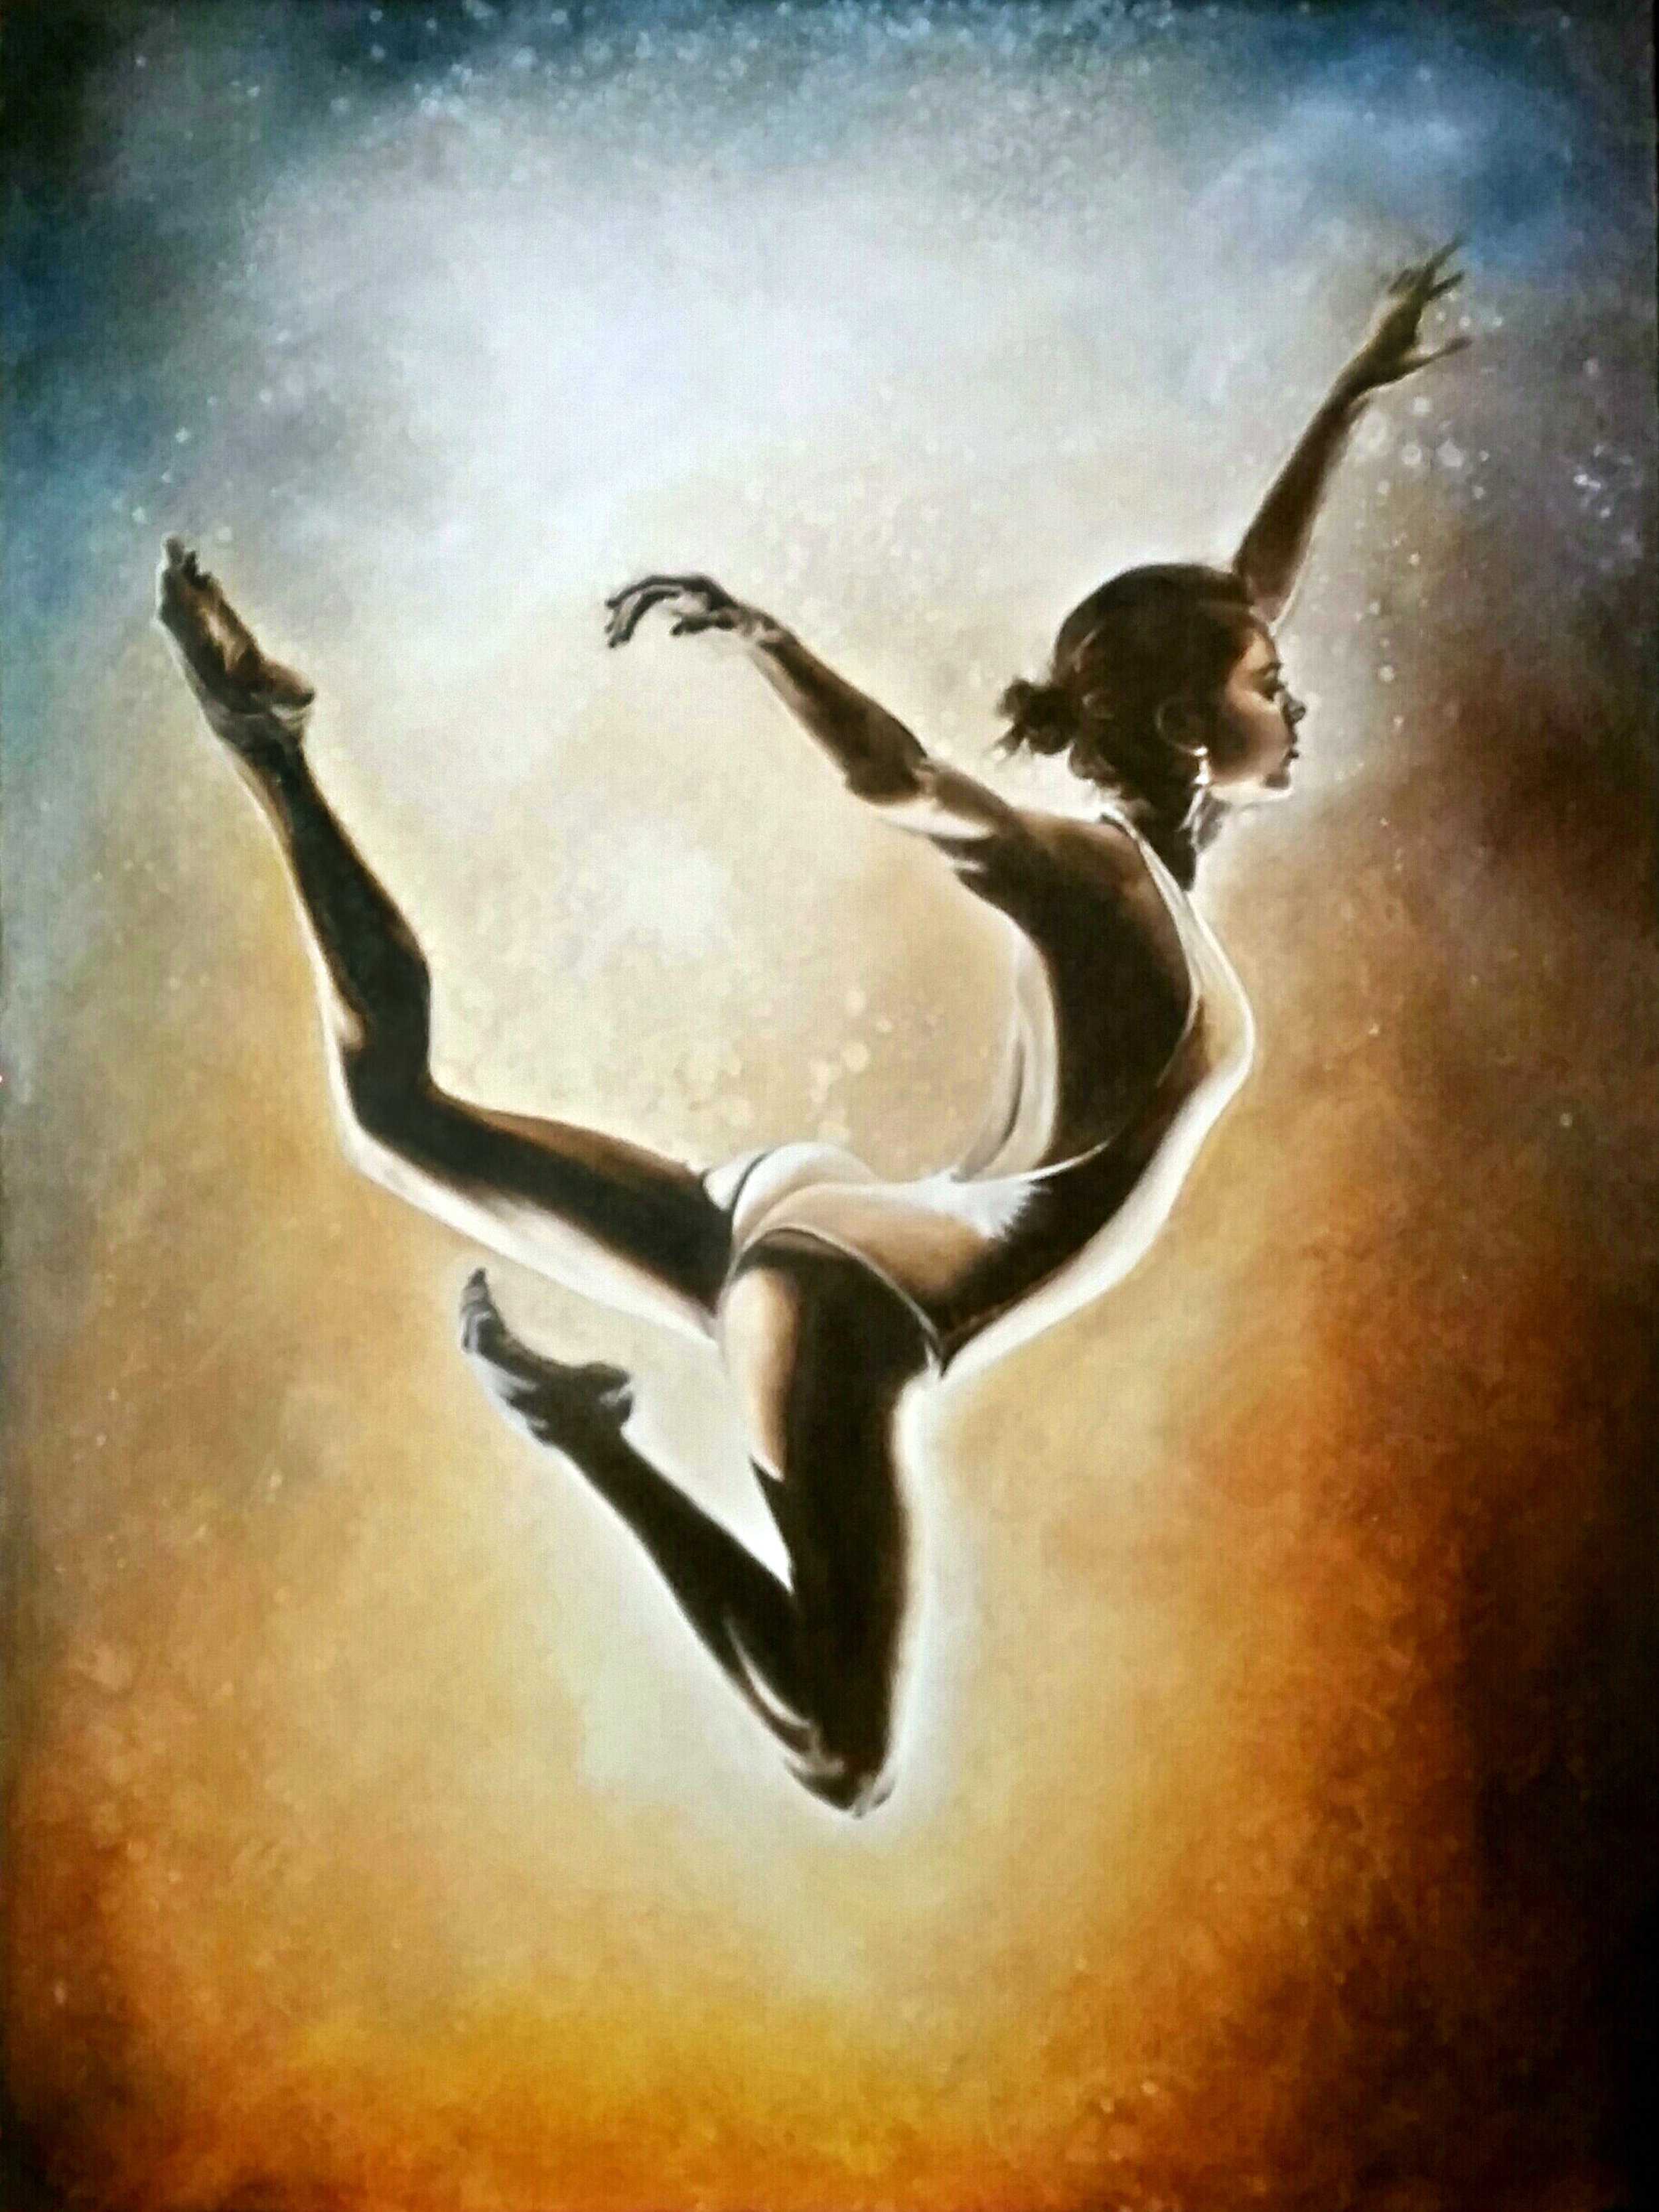 """""""Just Float"""", 2015, Ginger Del Rey  oil on gesso board 24"""" x 18"""" x 1""""  Sold  I imagine this lovely dancer as free-floating through a cosmic nebula, no gravity or friction to restrain her…free to simply float with perfect grace…"""